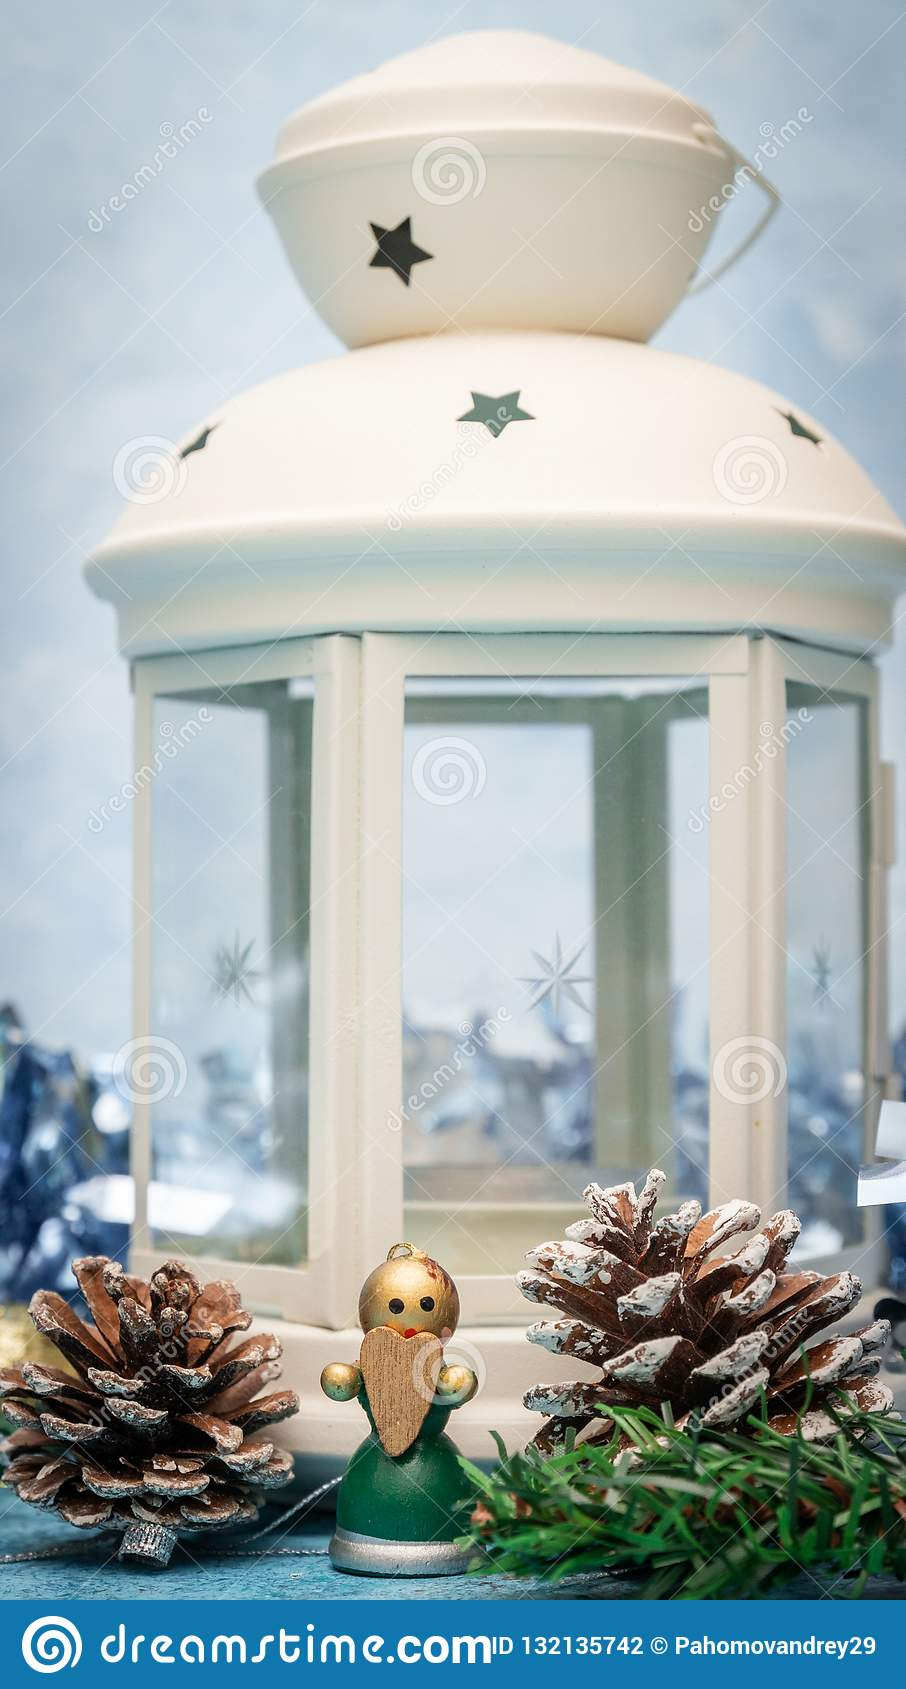 Christmas decorations. Candlestick candle close-up with a small wooden angel with a heart in his hands